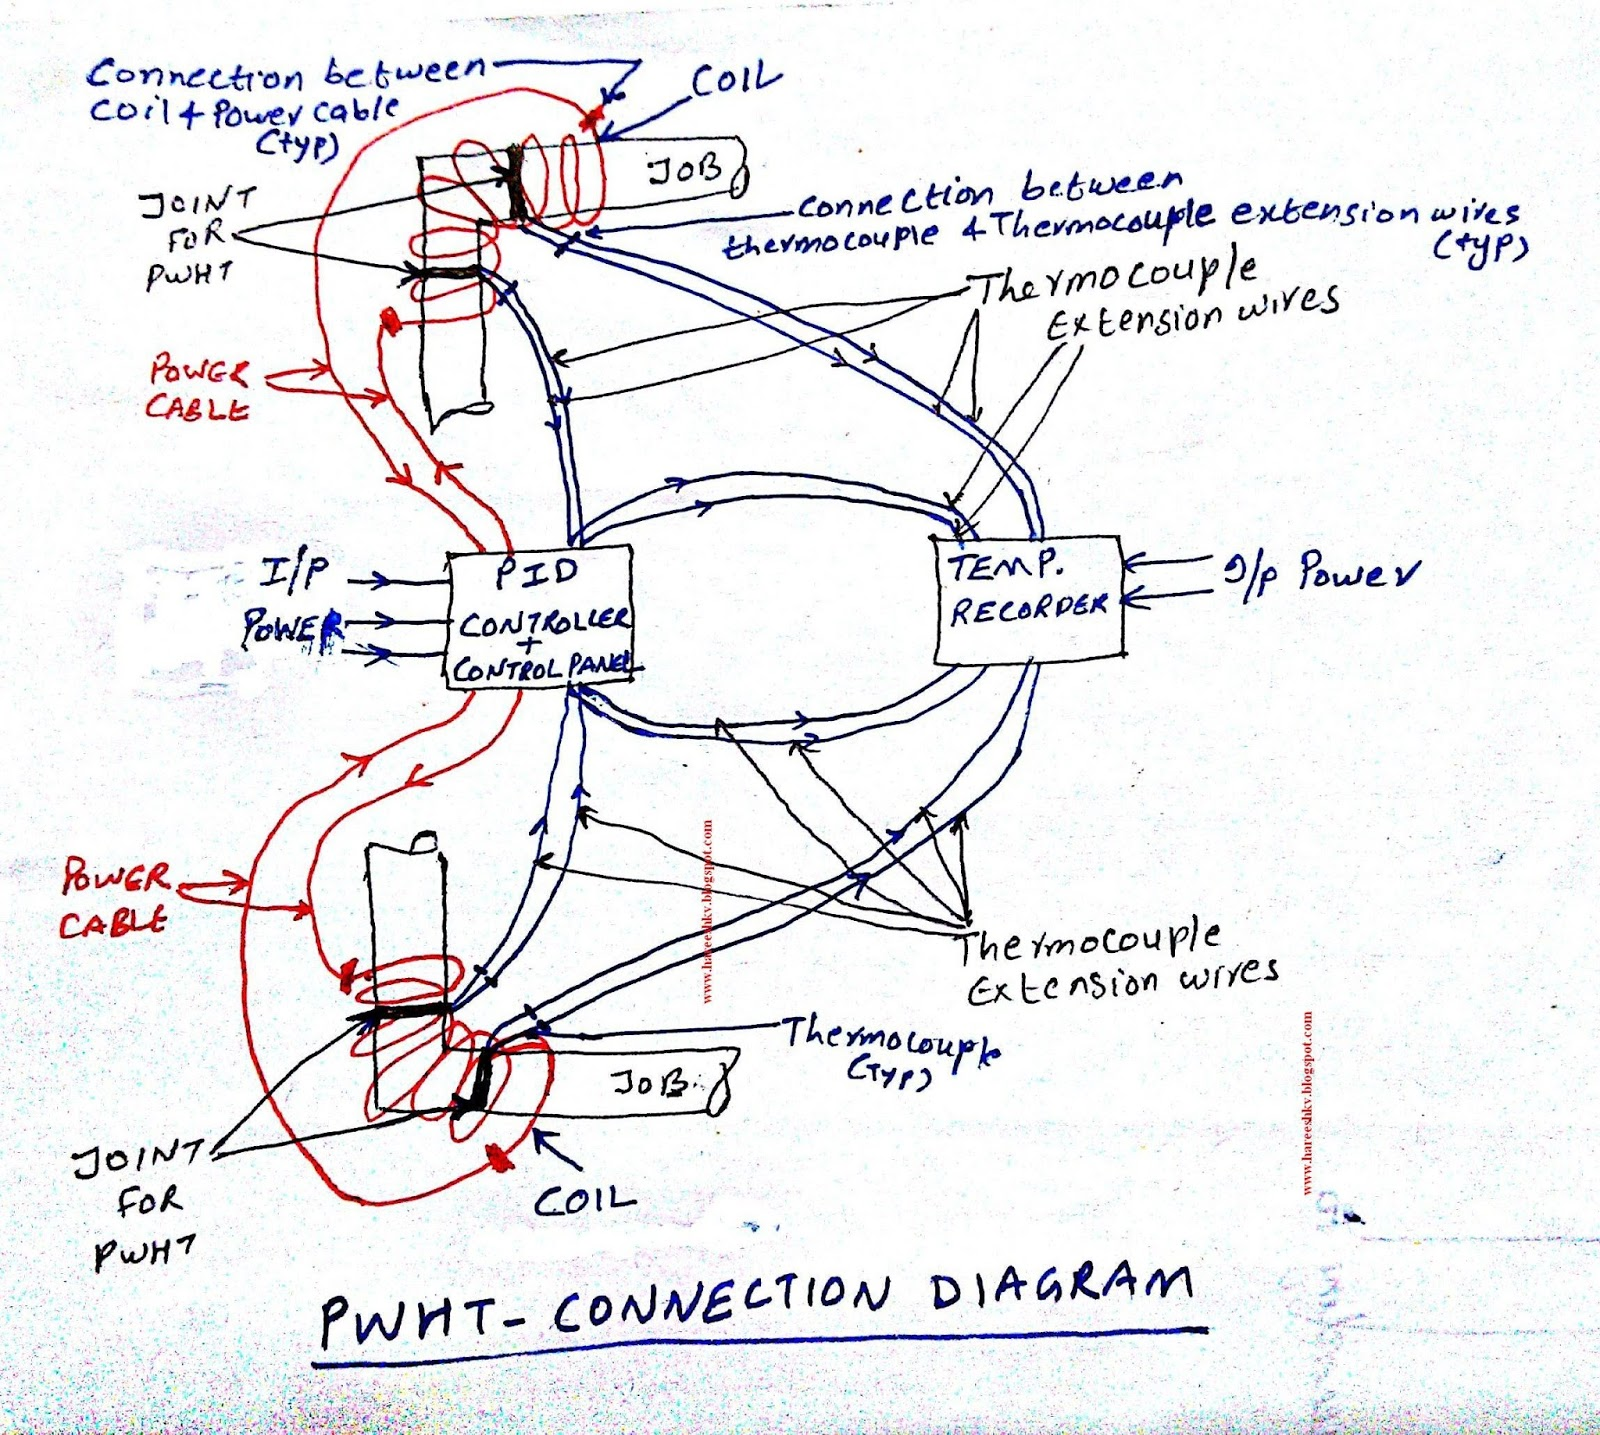 Below is the connection diagram of PWHT equipments.